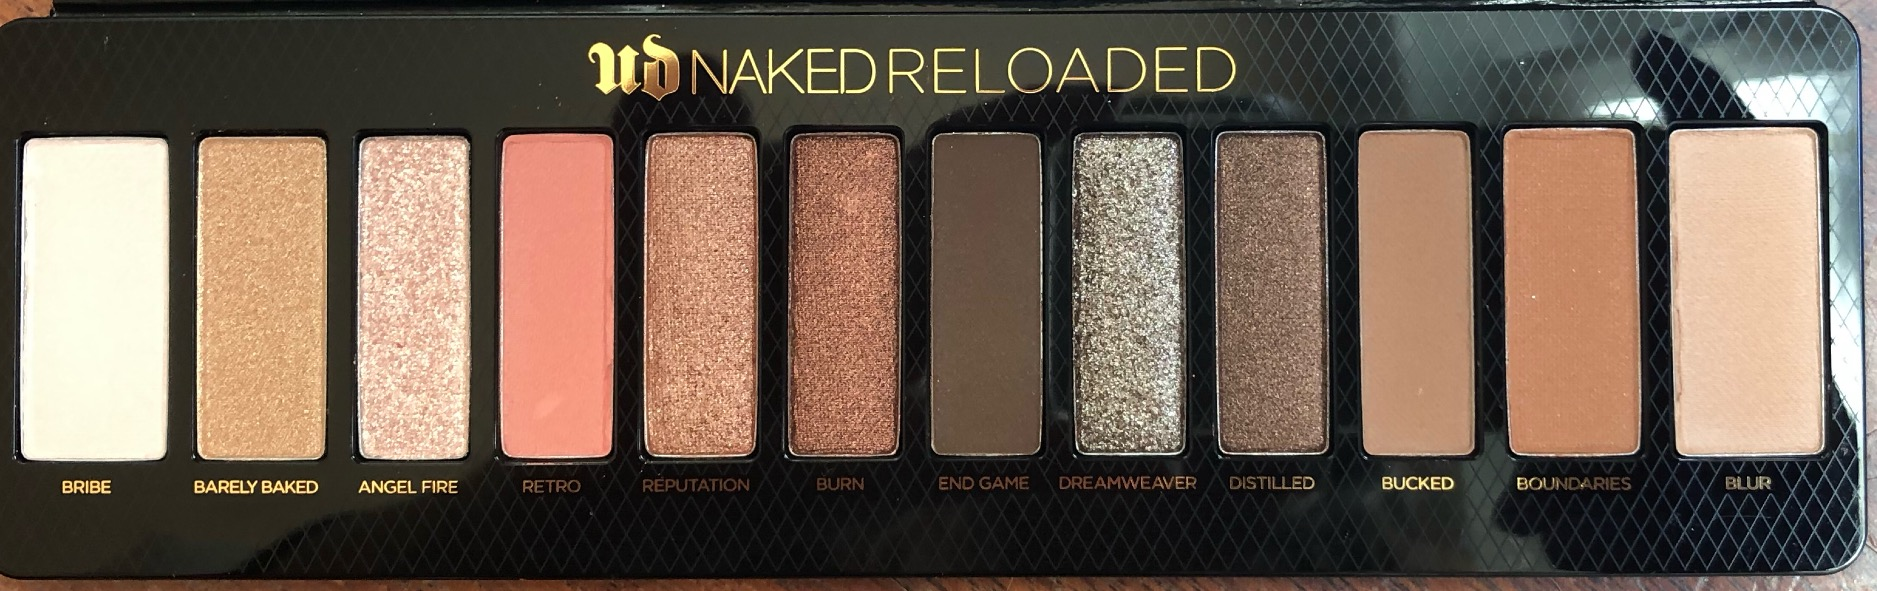 Recensione Urban Decay Naked Reloaded 4